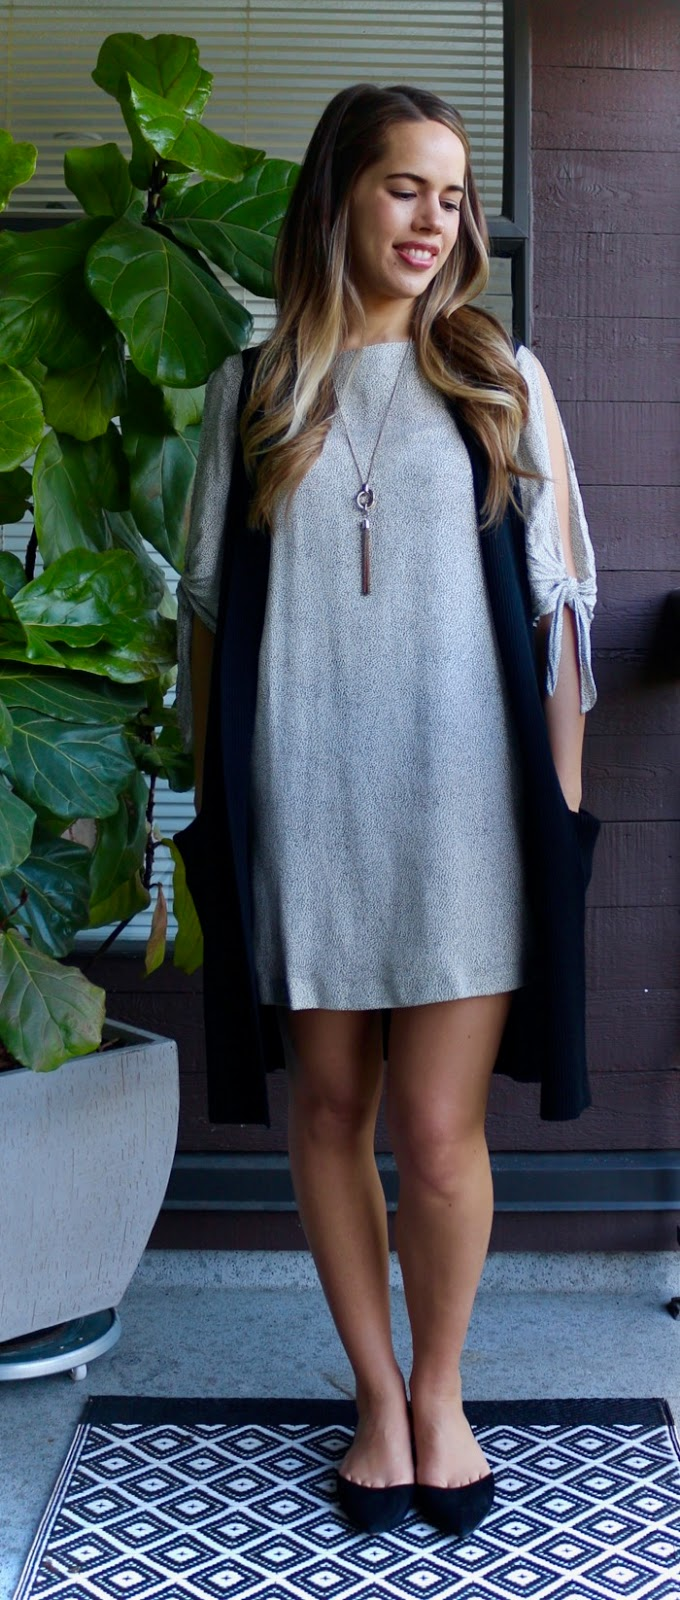 Jules in Flats - Tie-Sleeve Shift Dress with Sweater Vest